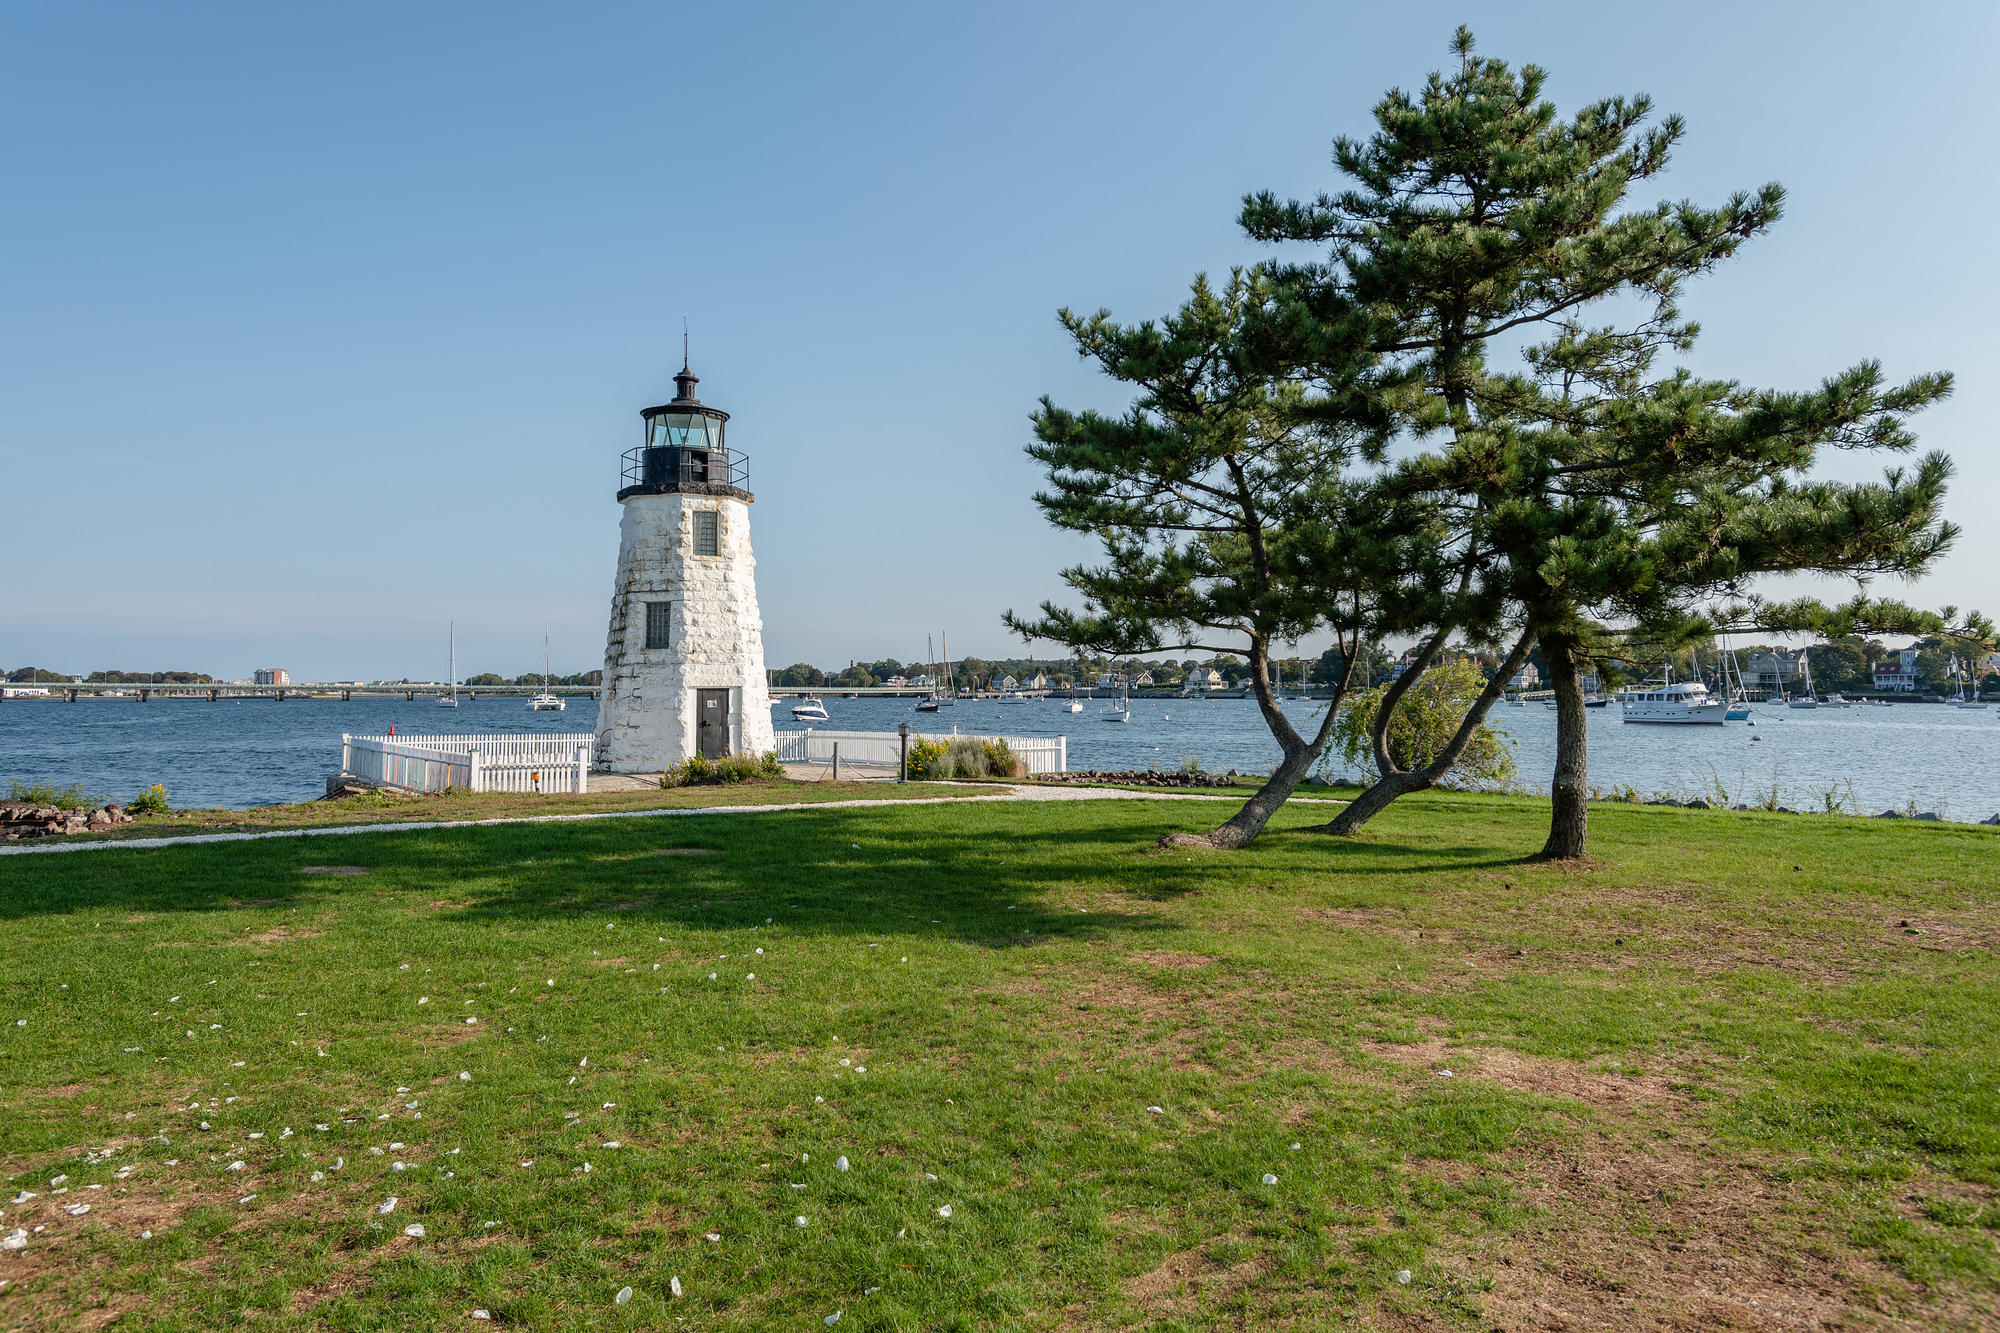 The coast and harbor of Newport, Rhode Island